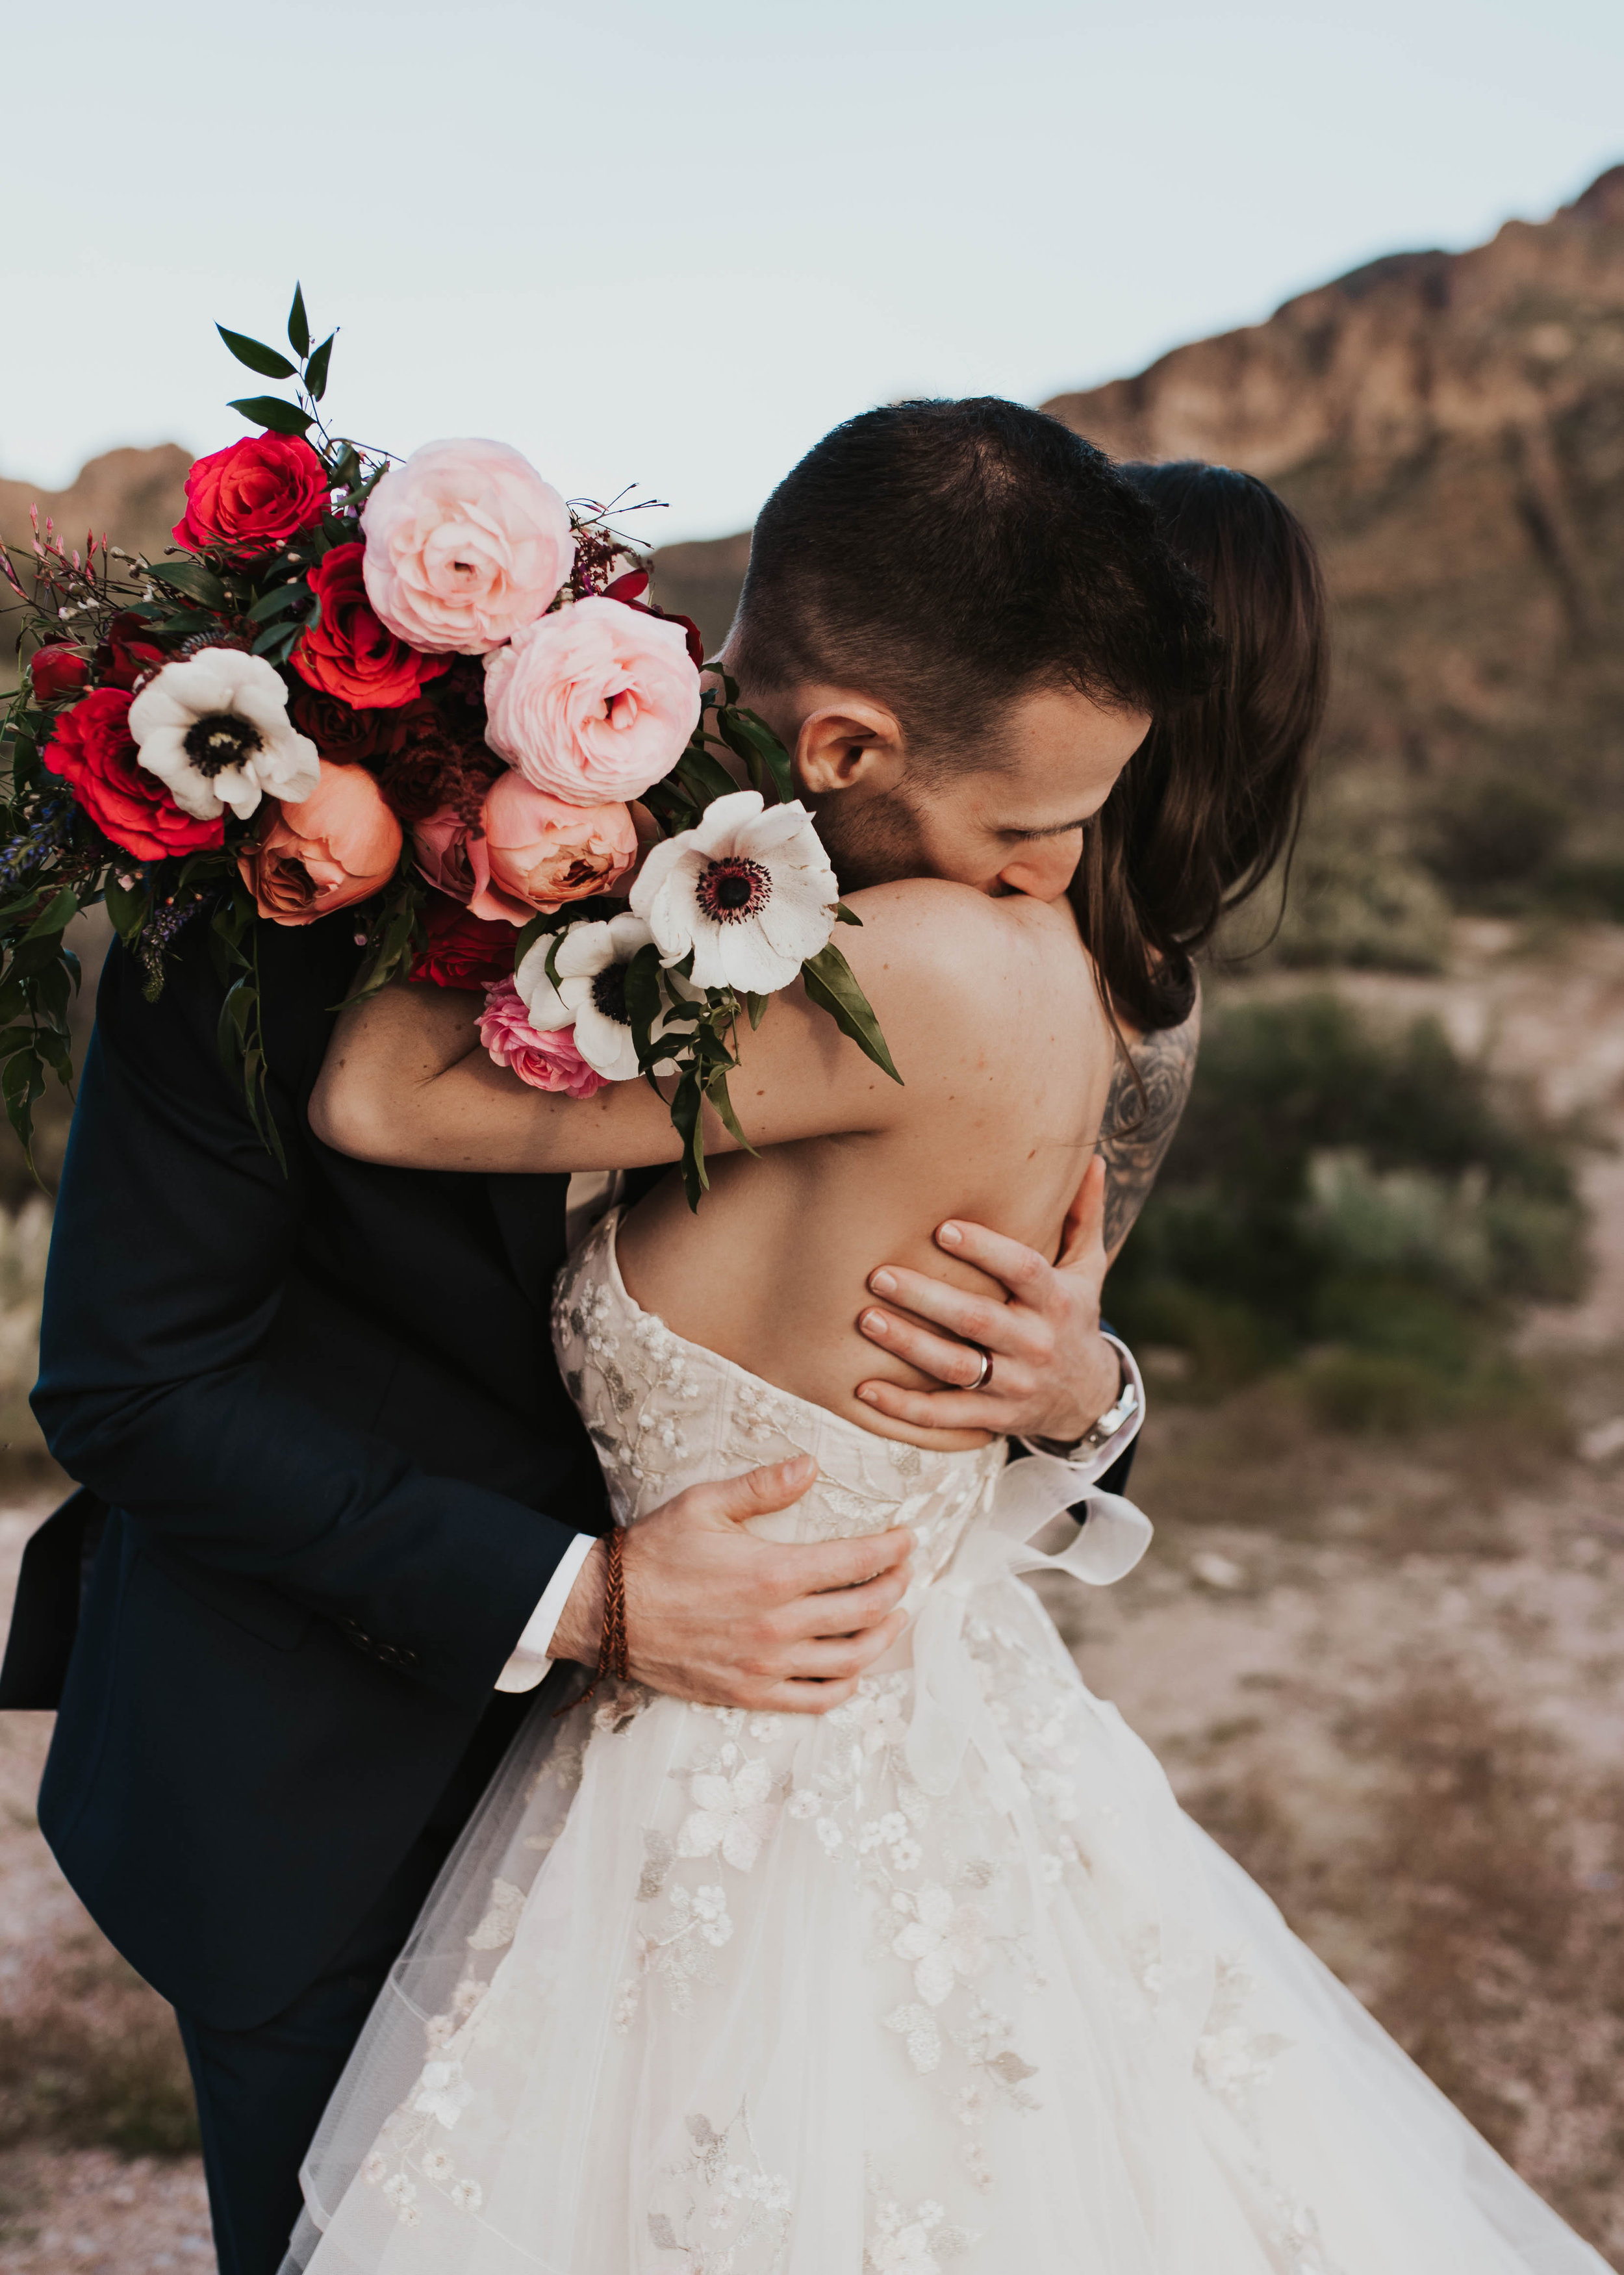 Desert Wedding at Tela Peralta - Arizona florist Phoenix scottsdale Mesa chandler Sedona Flagstaff Prescott - Couple Portraits - Bridal Bouquet with Anemone, ranunculus, garden roses, and hot lady roses.